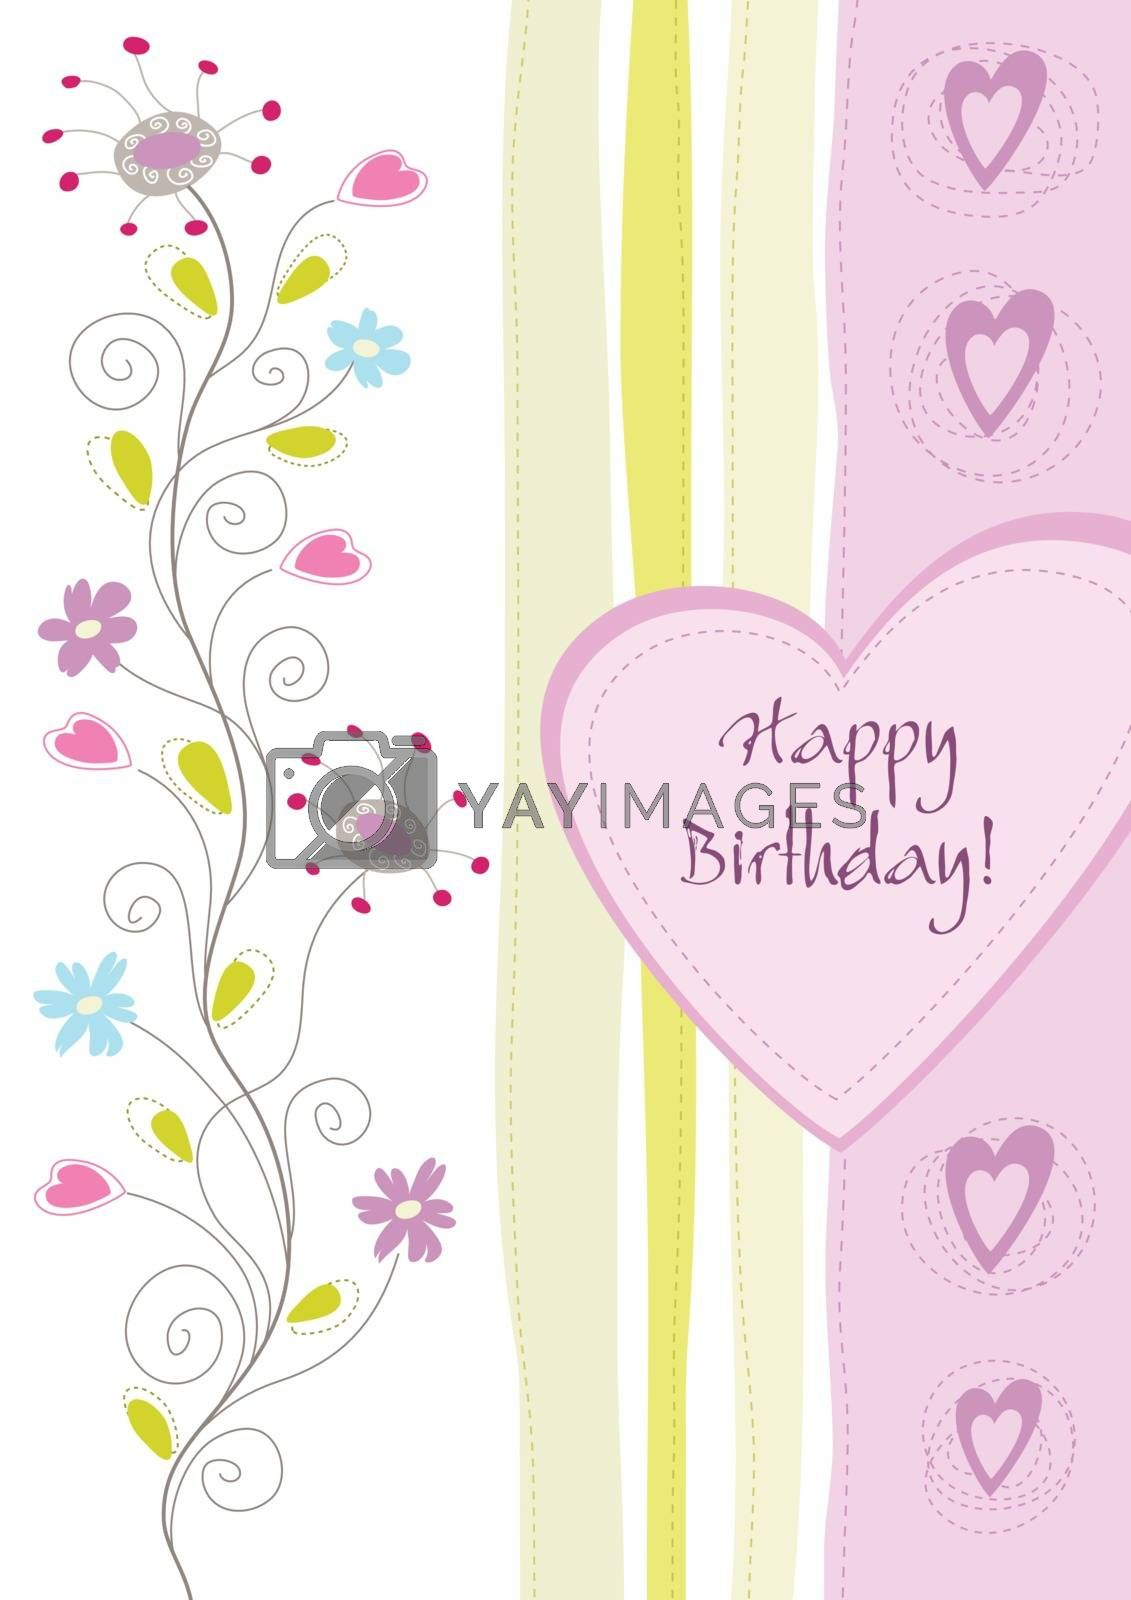 Happy birthday floral greeting card. This image is a vector illustration.